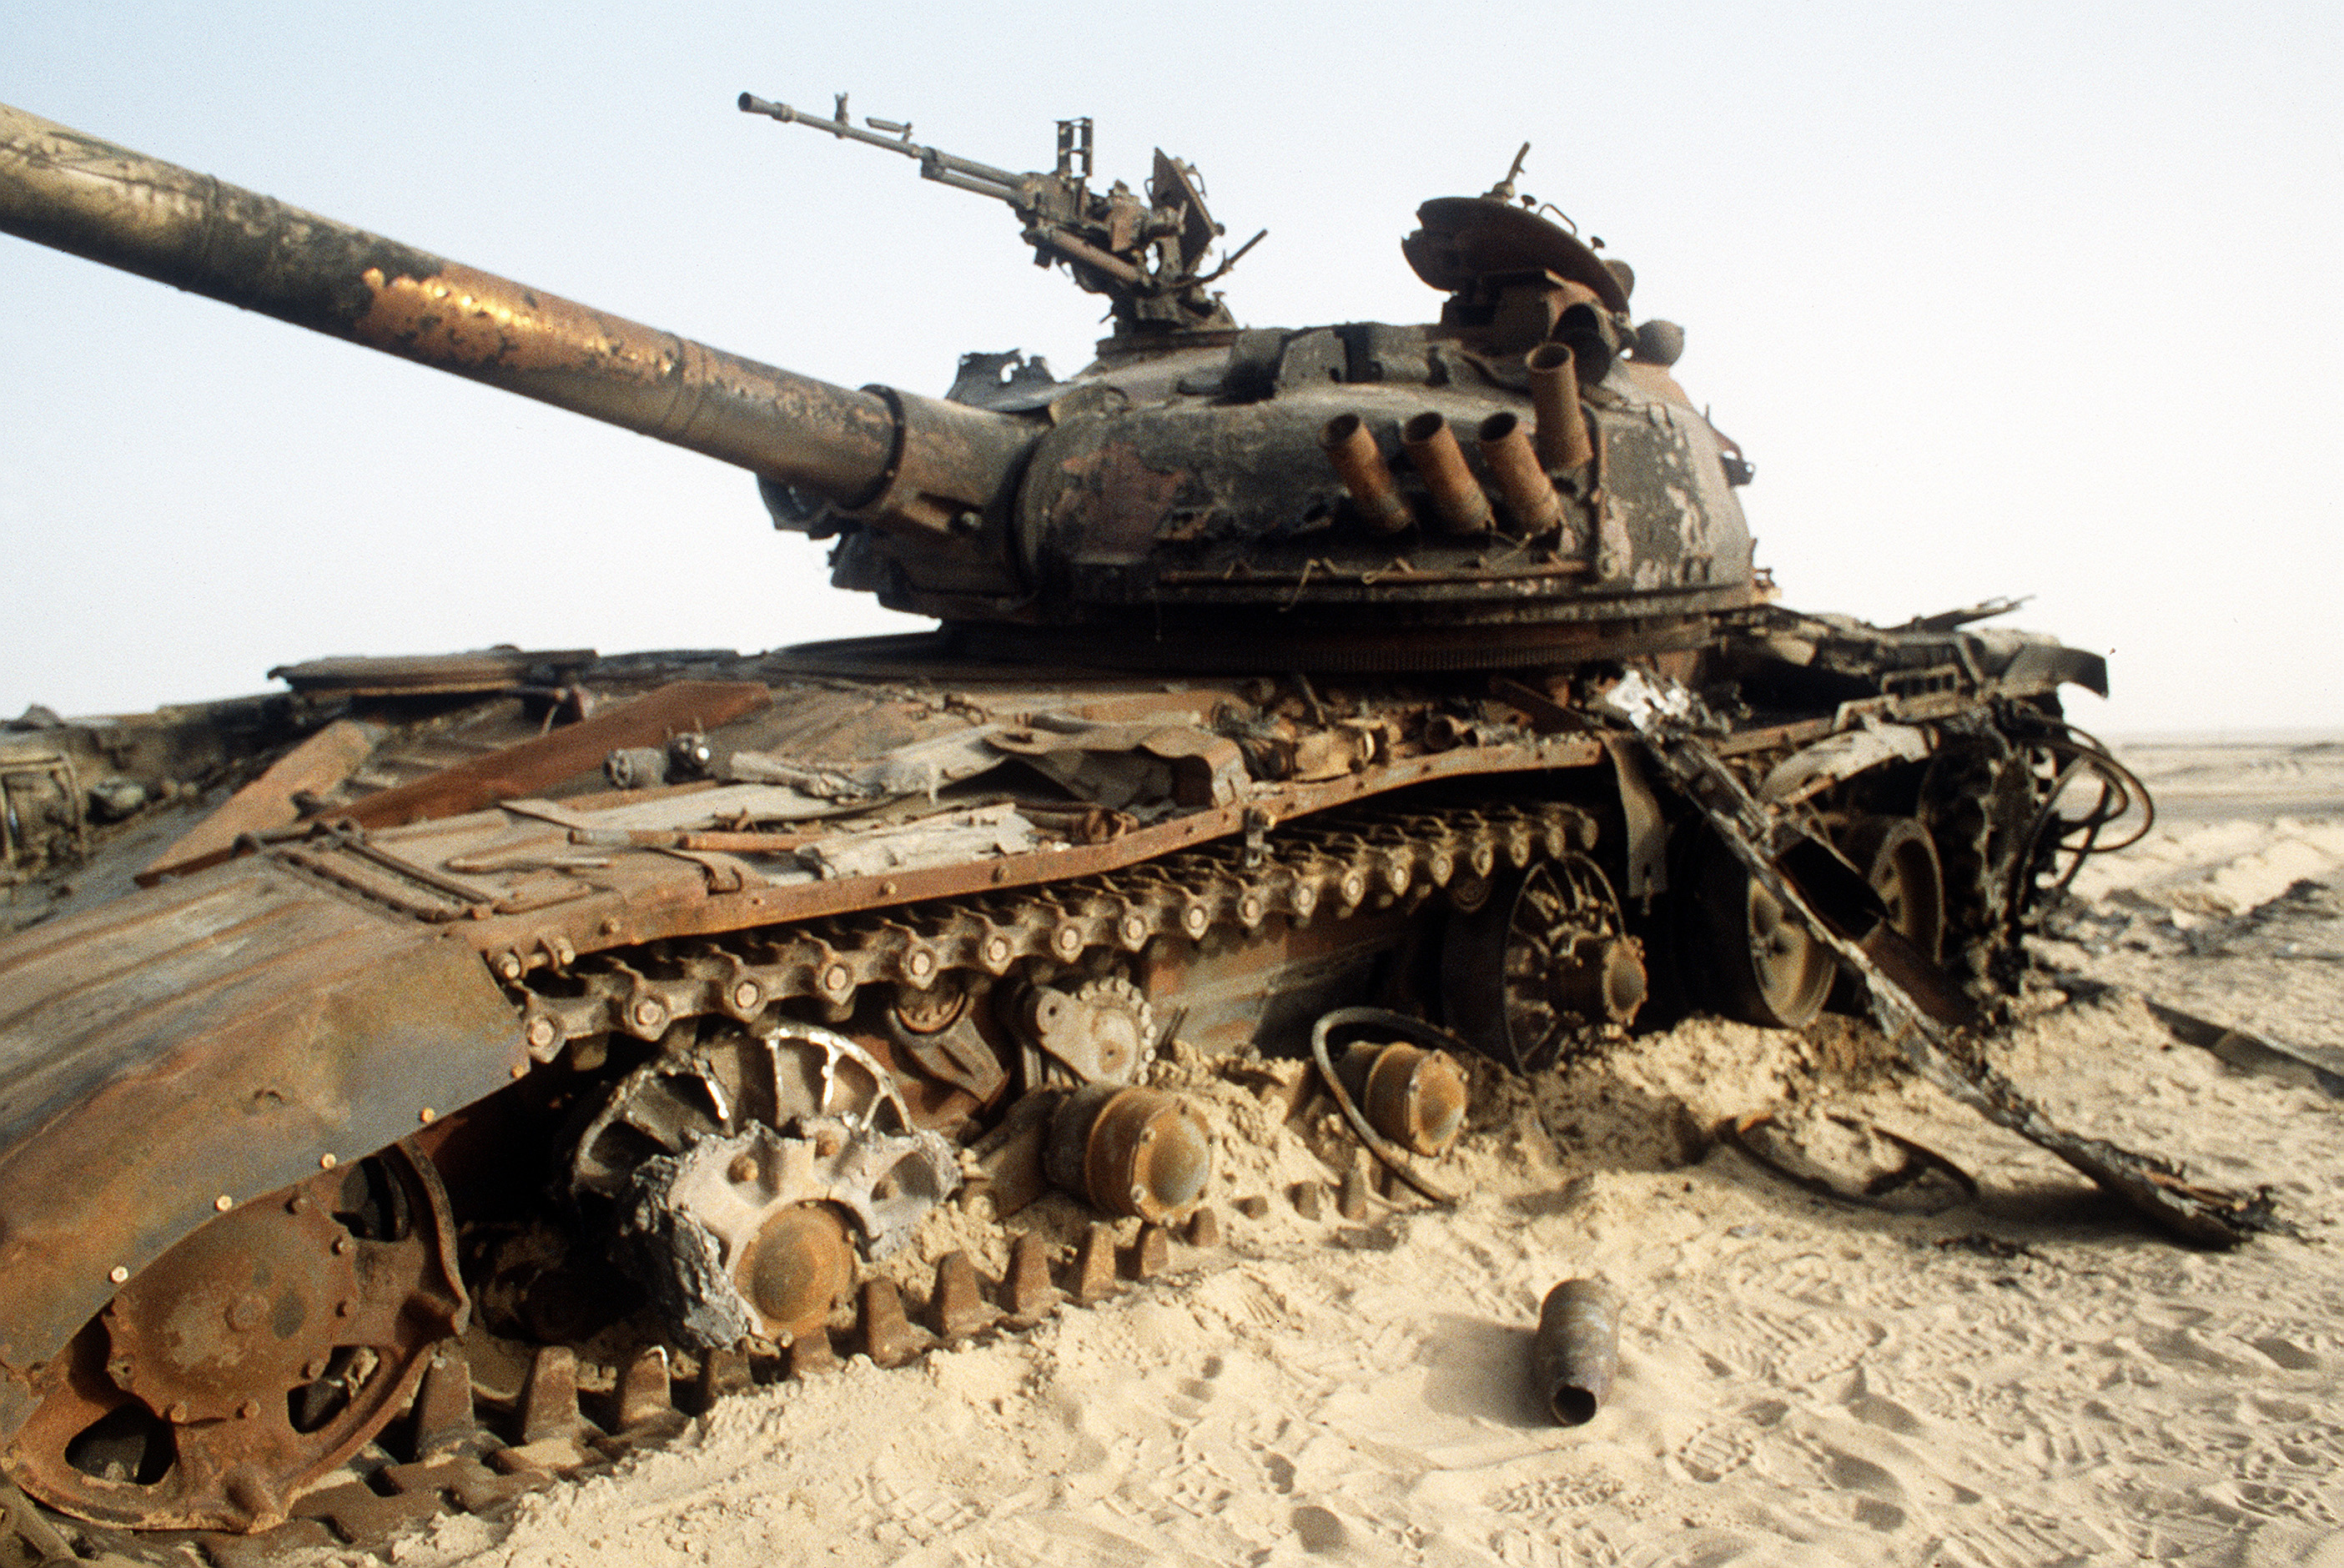 A destroyed Iraqi T-72 main battle tank sits in the desert in the wake of advancing coalition forces during Operation Desert Storm.